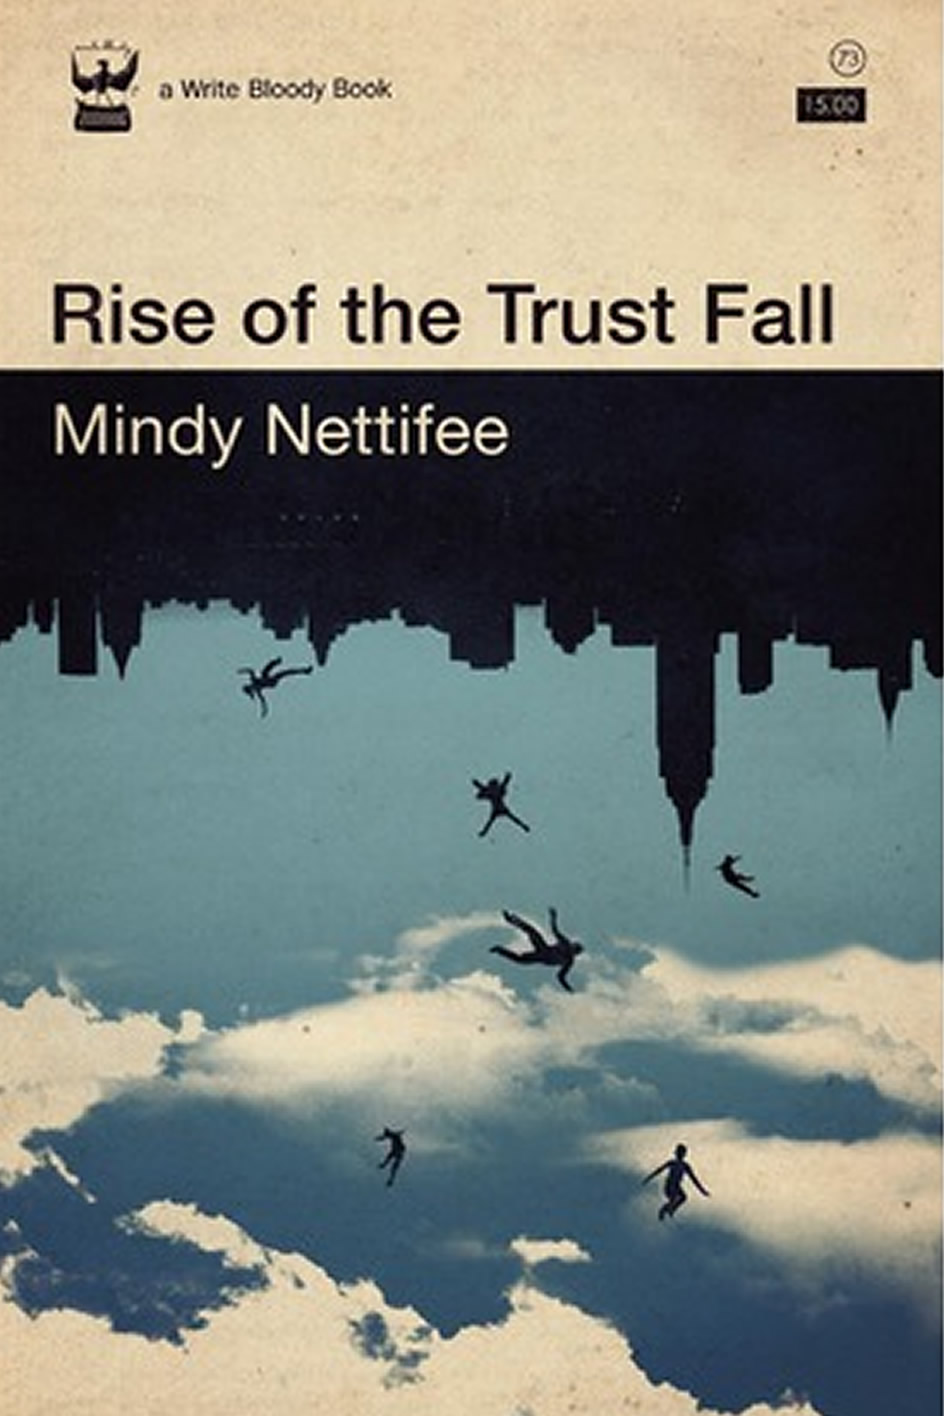 Book cover features an upside down city skyline with figures falling into a sky of clouds